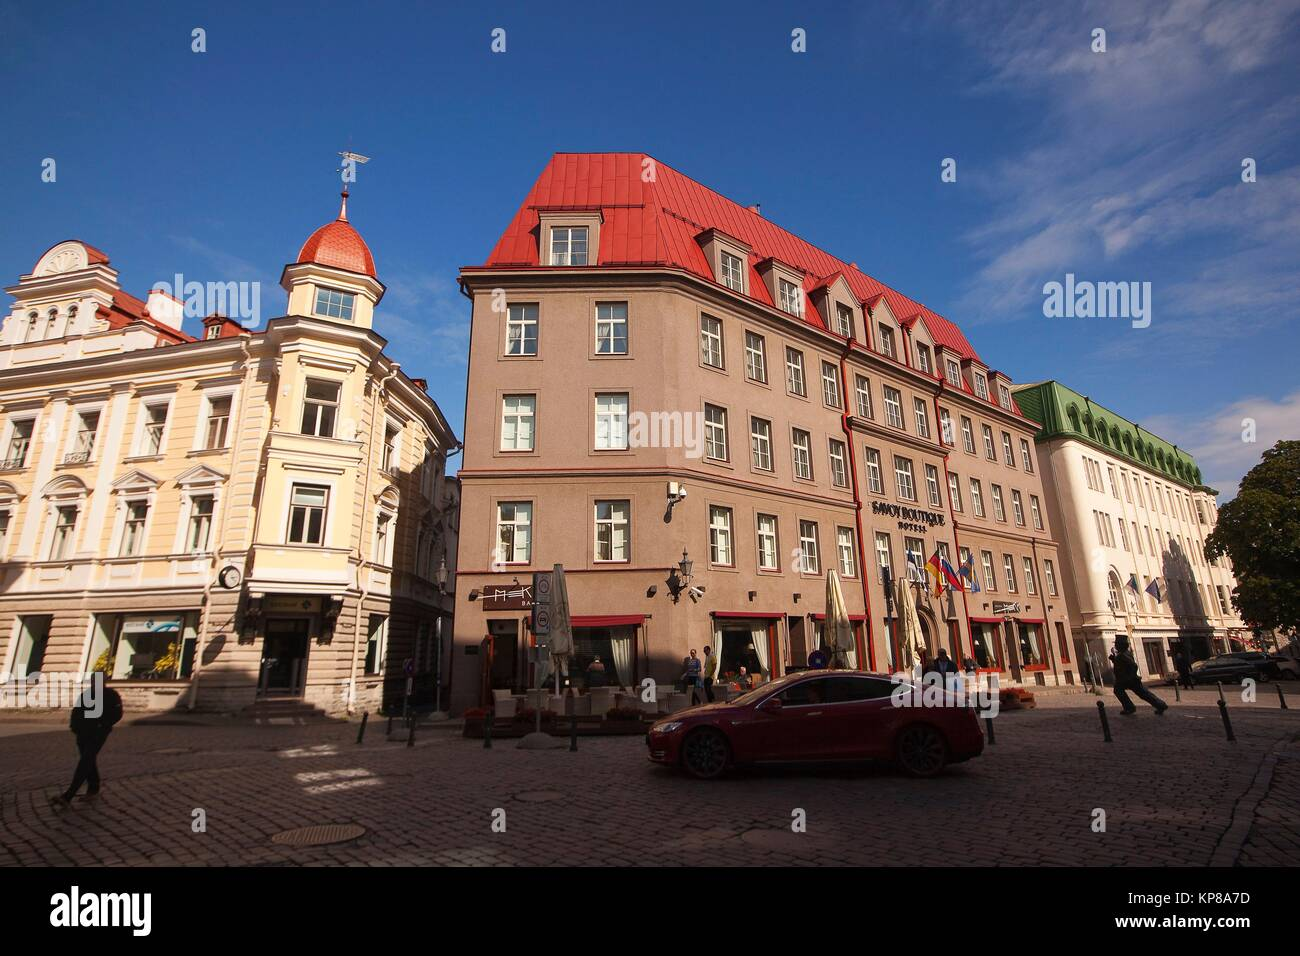 Traditional buildings in the old town, Tallinn, Estonia, Baltic States, Europe. Stock Photo